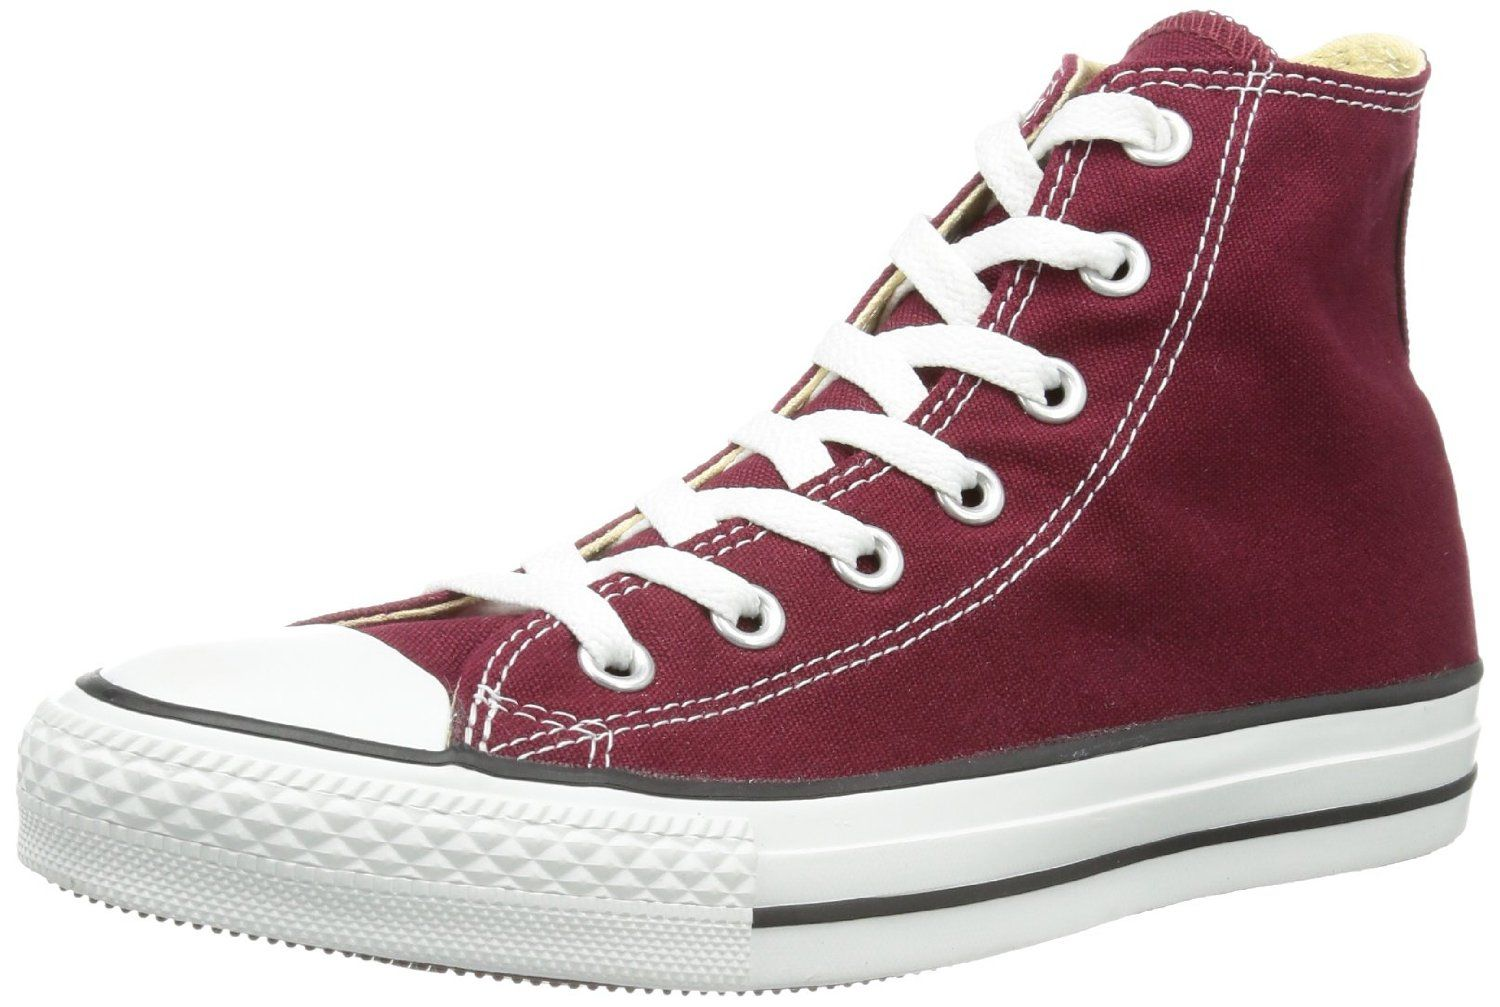 Nike Mercurial Veloce III DF FG  Chaussures de Football Homme Chaussures Converse rouge bordeaux Fashion unisexe  Boots femme NSkUkH3